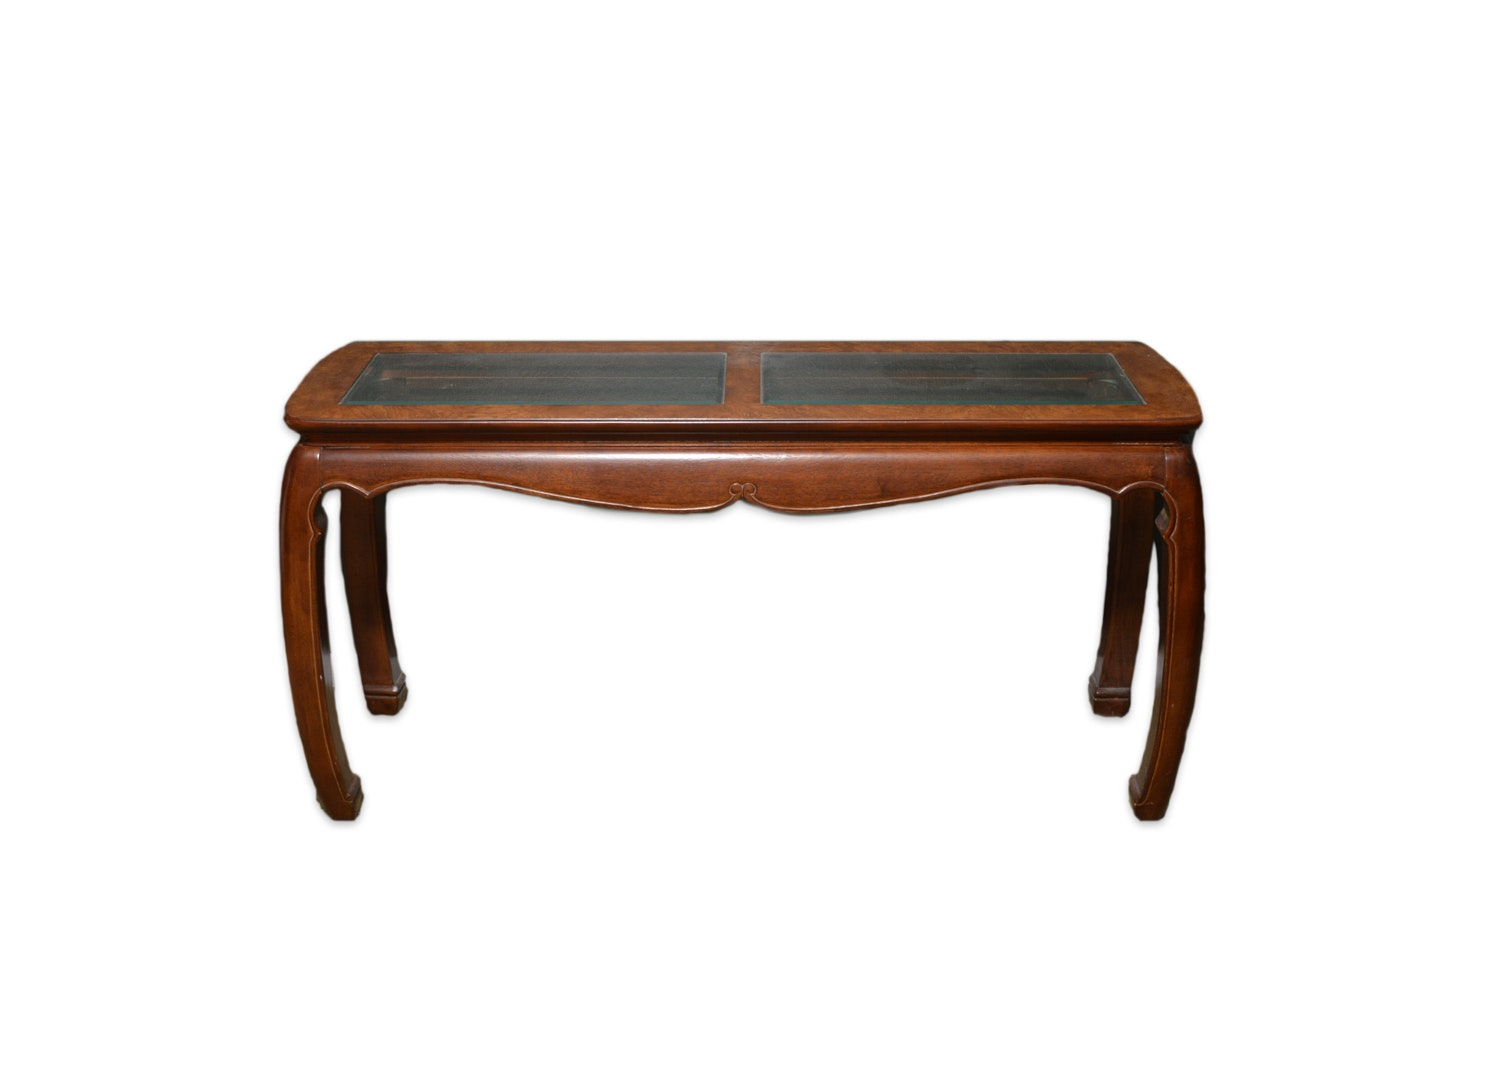 Chinese Inspired Glass Top Mixed Wood Console Table